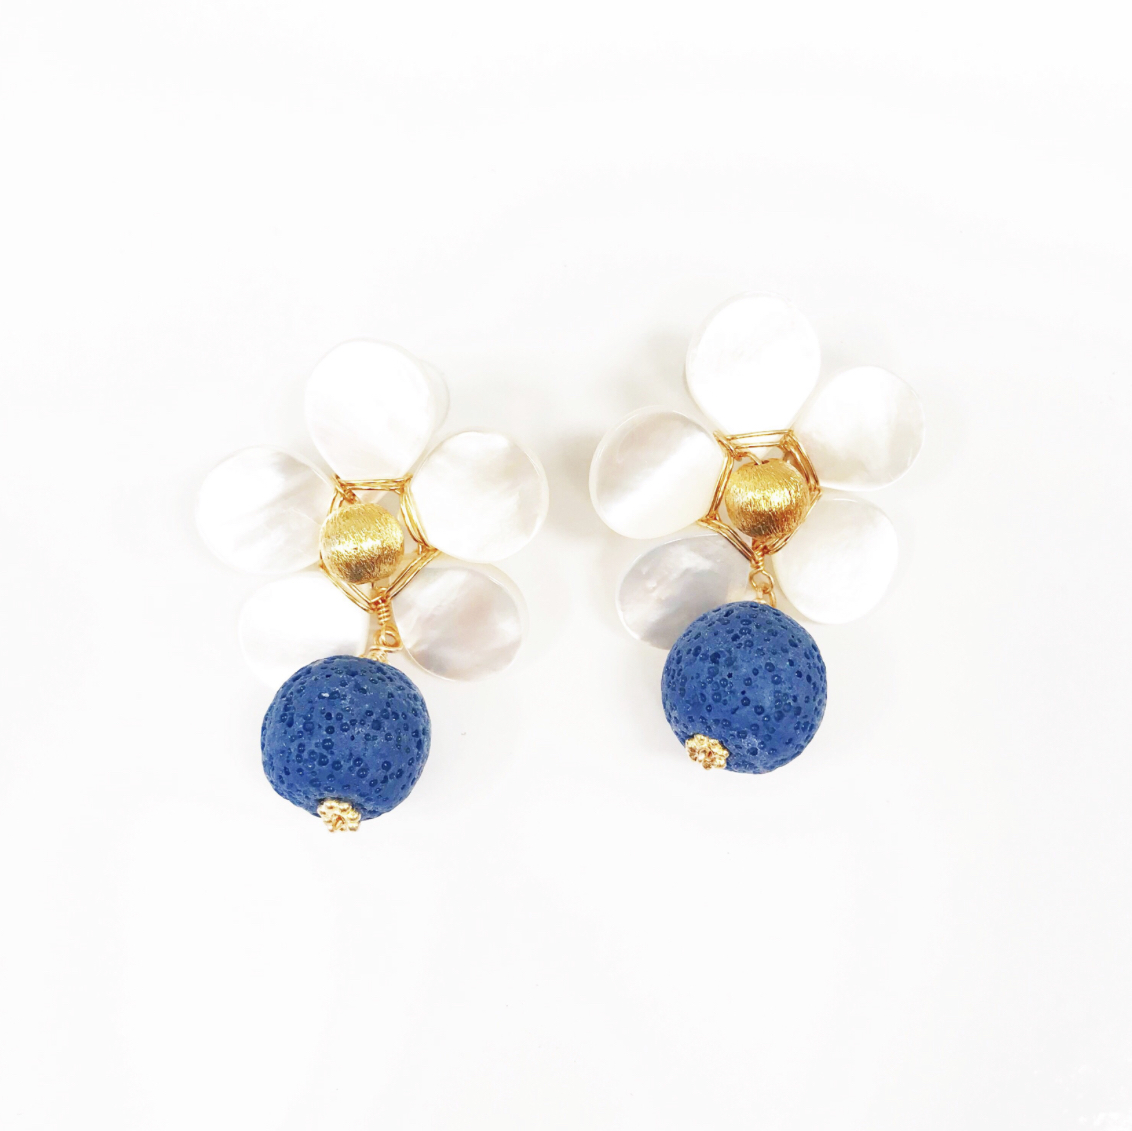 THE KATE SET - These darling flower earrings are the perfect statement piece!